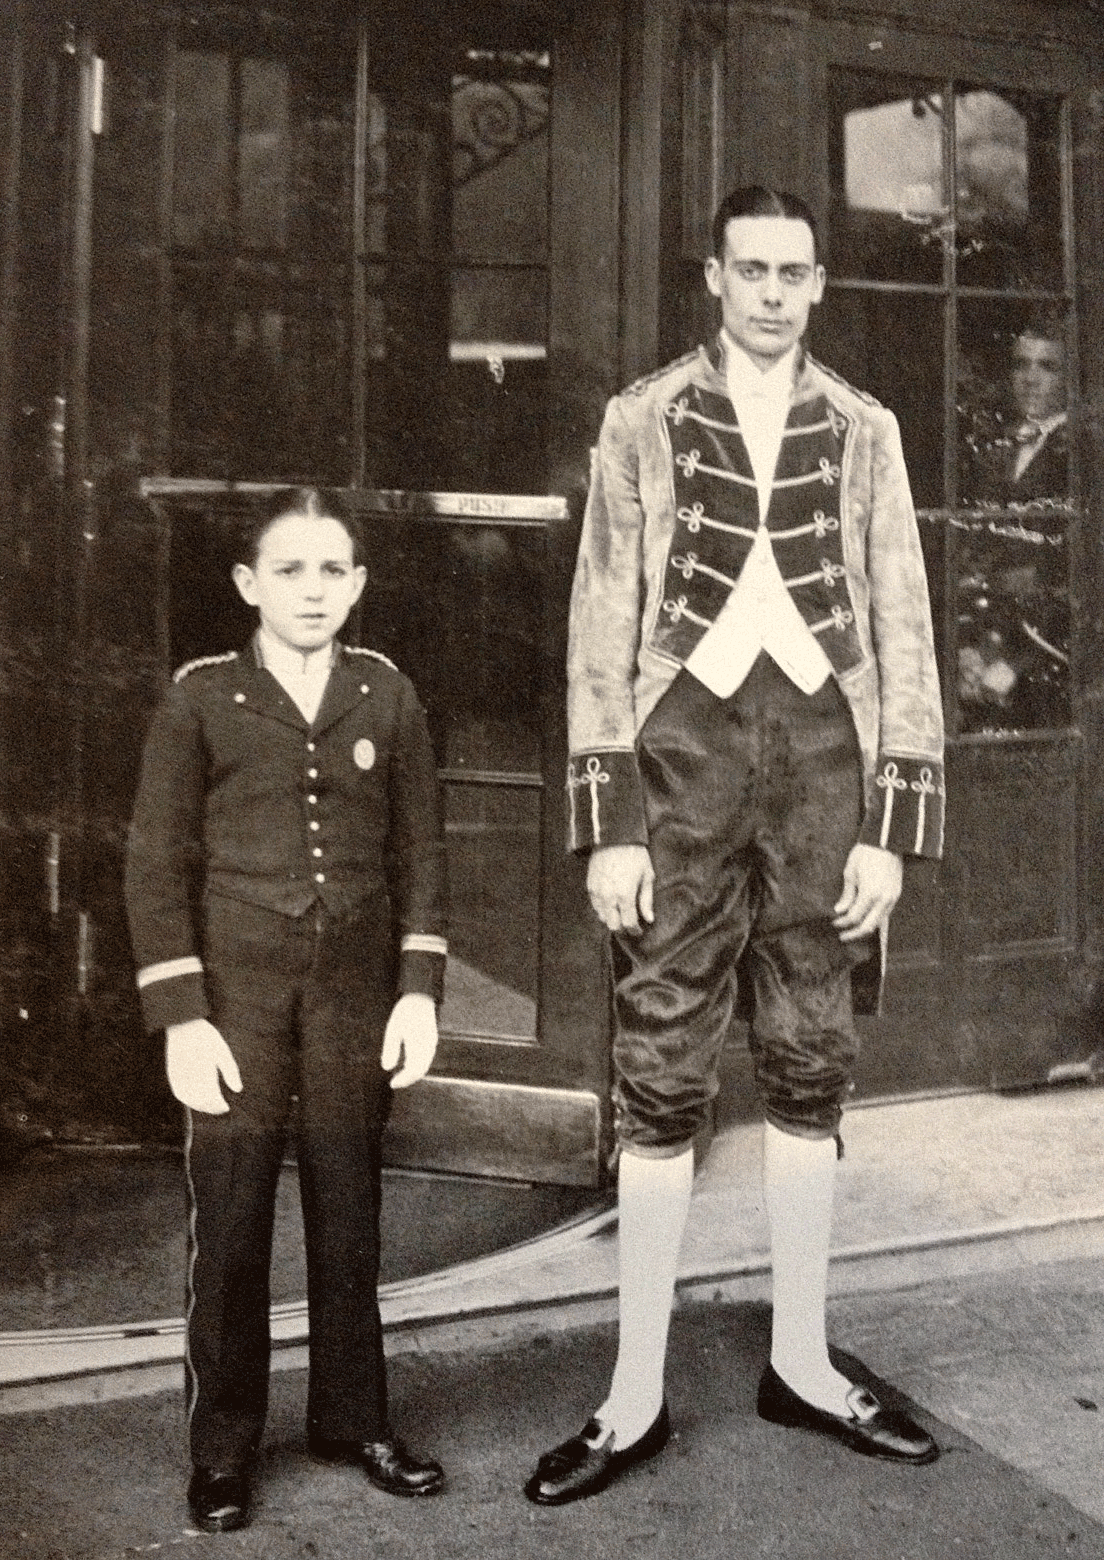 Footman and bellboy in front of The Savoy, London